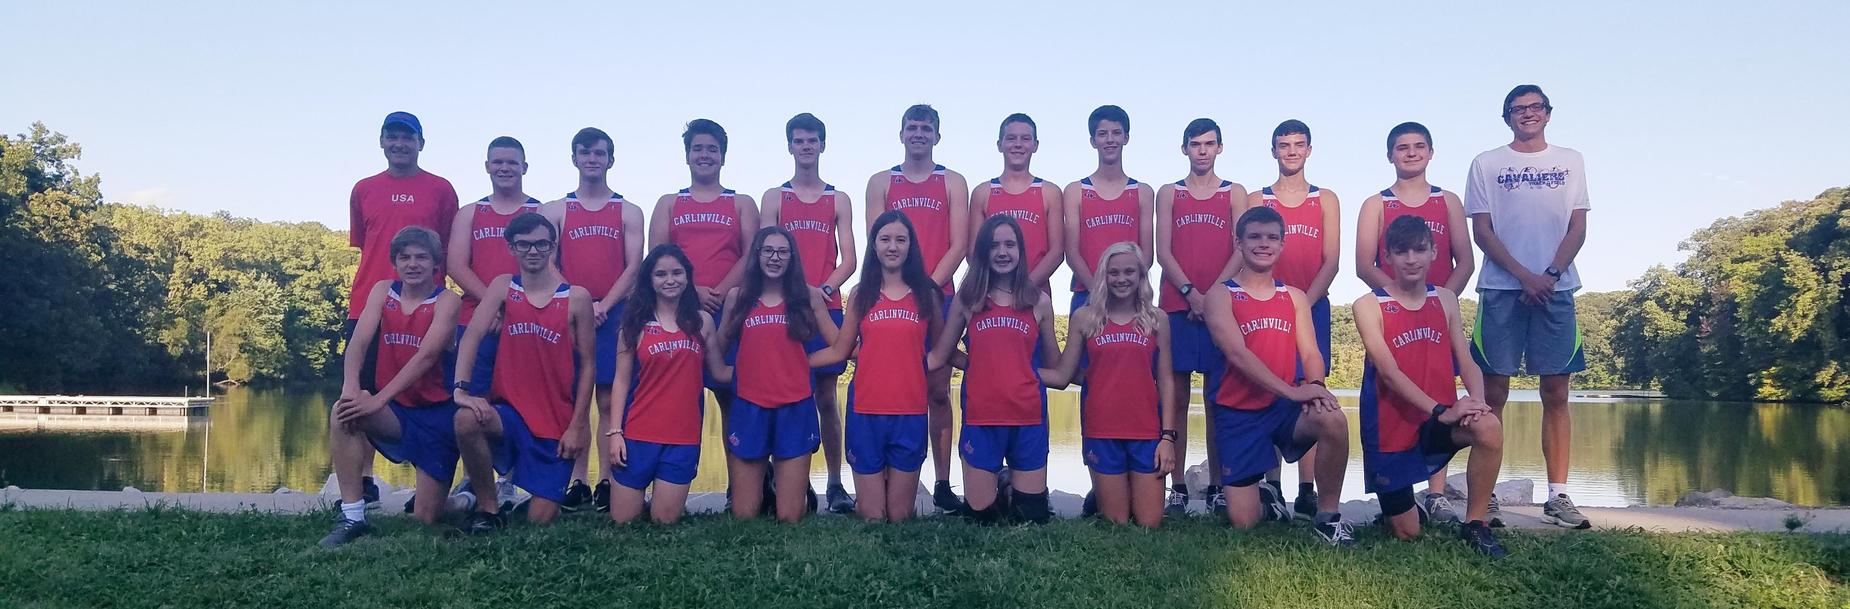 2019 Carlinville High School Cross Country Team